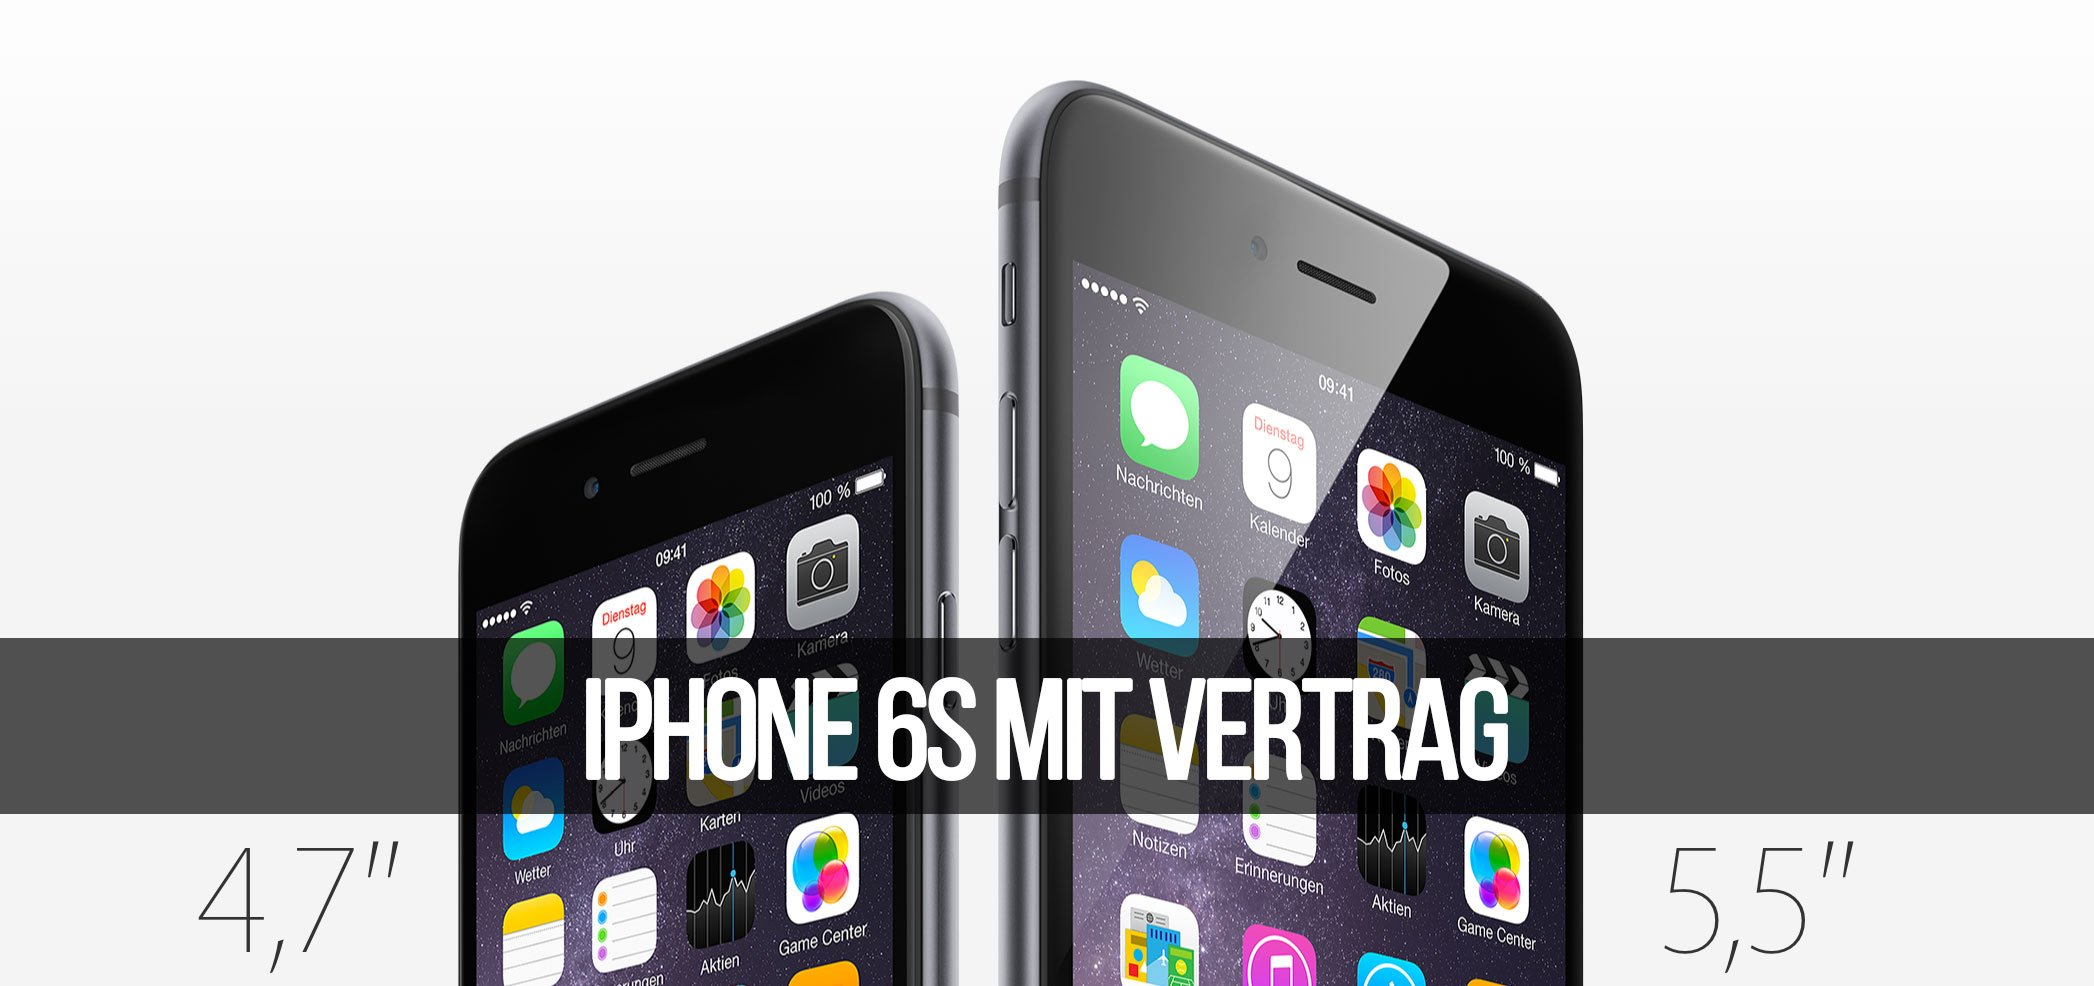 iphone 6s mit vertrag telekom vodafone o2. Black Bedroom Furniture Sets. Home Design Ideas